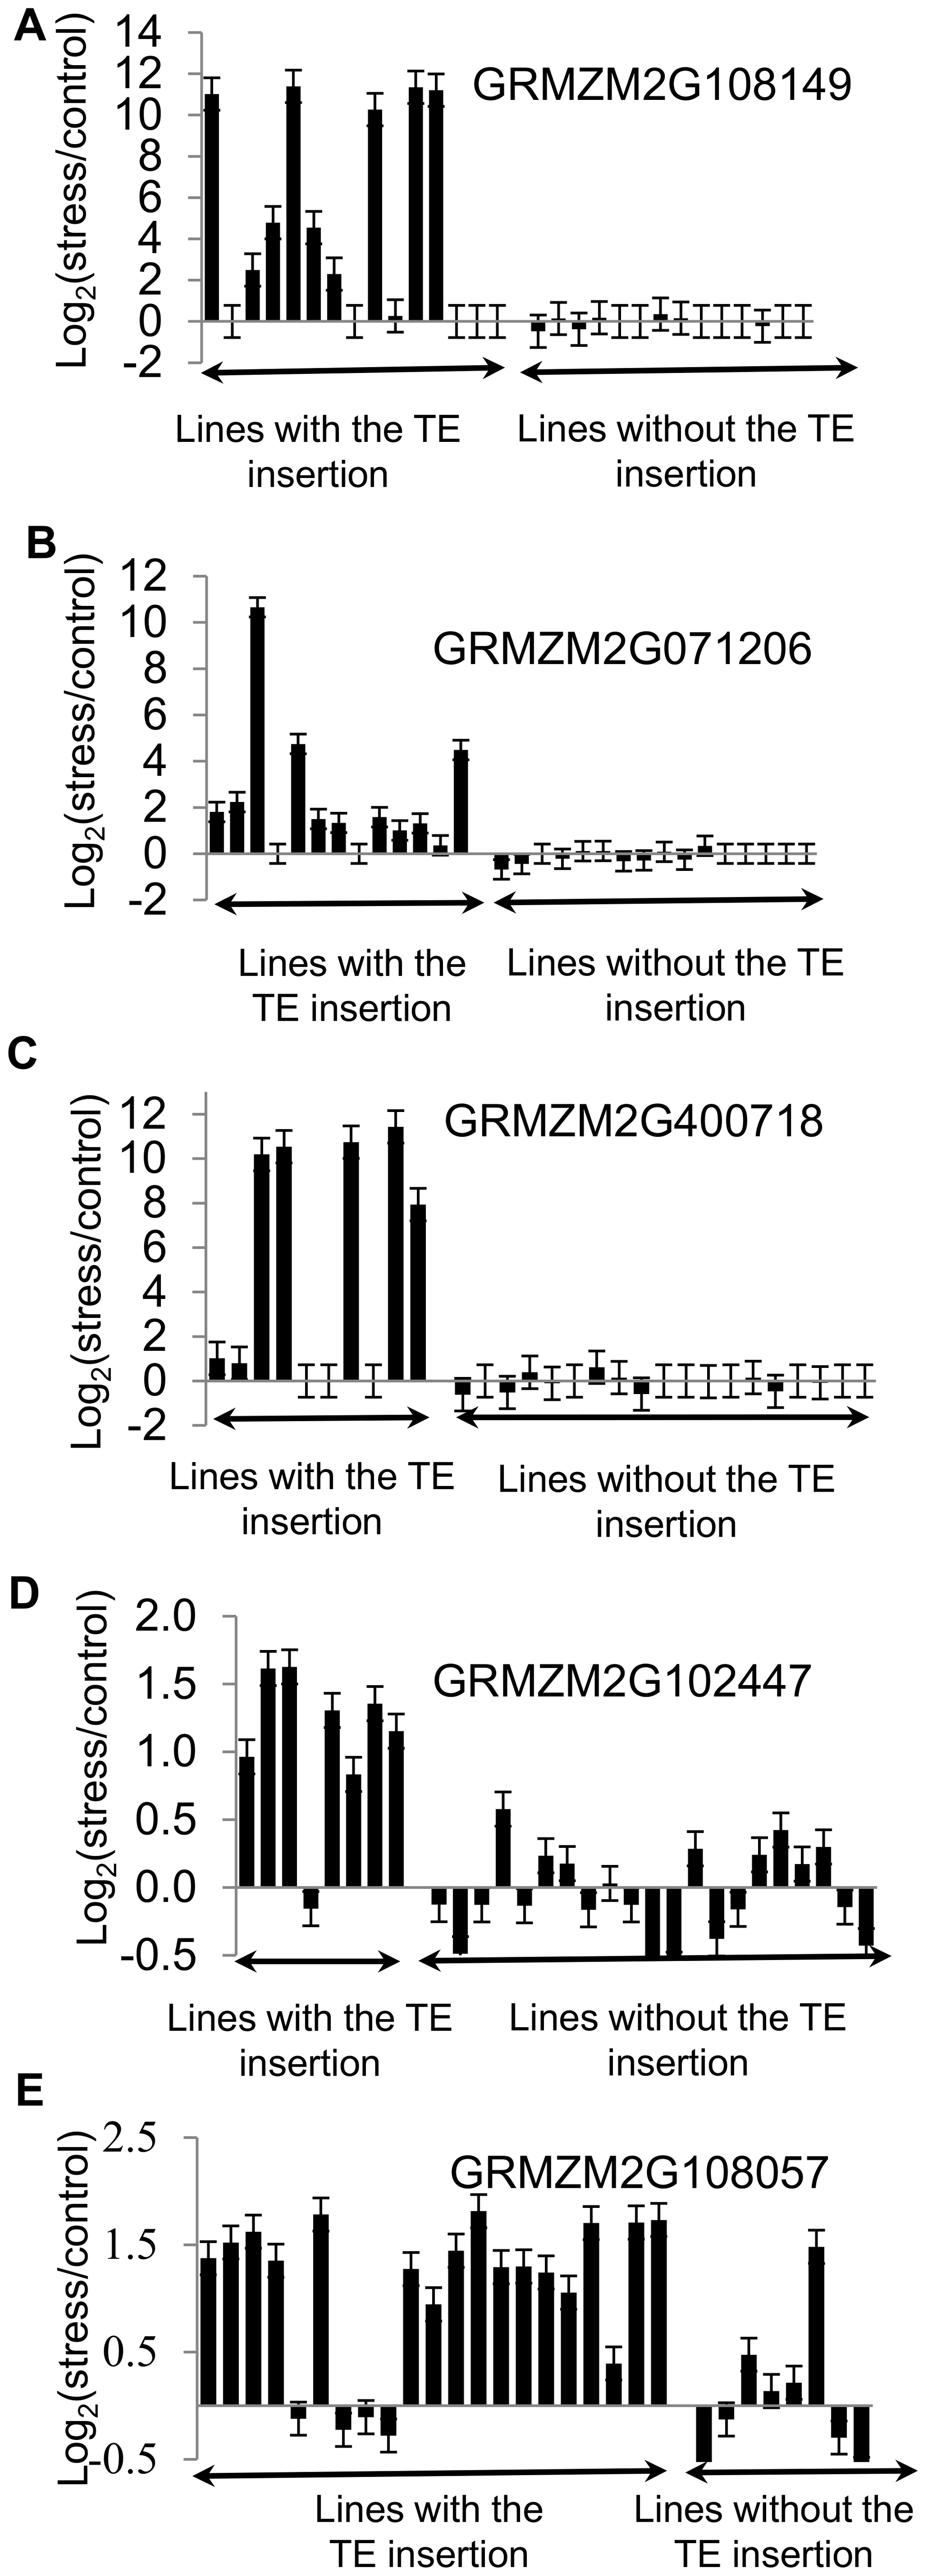 Validations of correlation between stress-induced up-regulation of gene expression and presence of TEs.